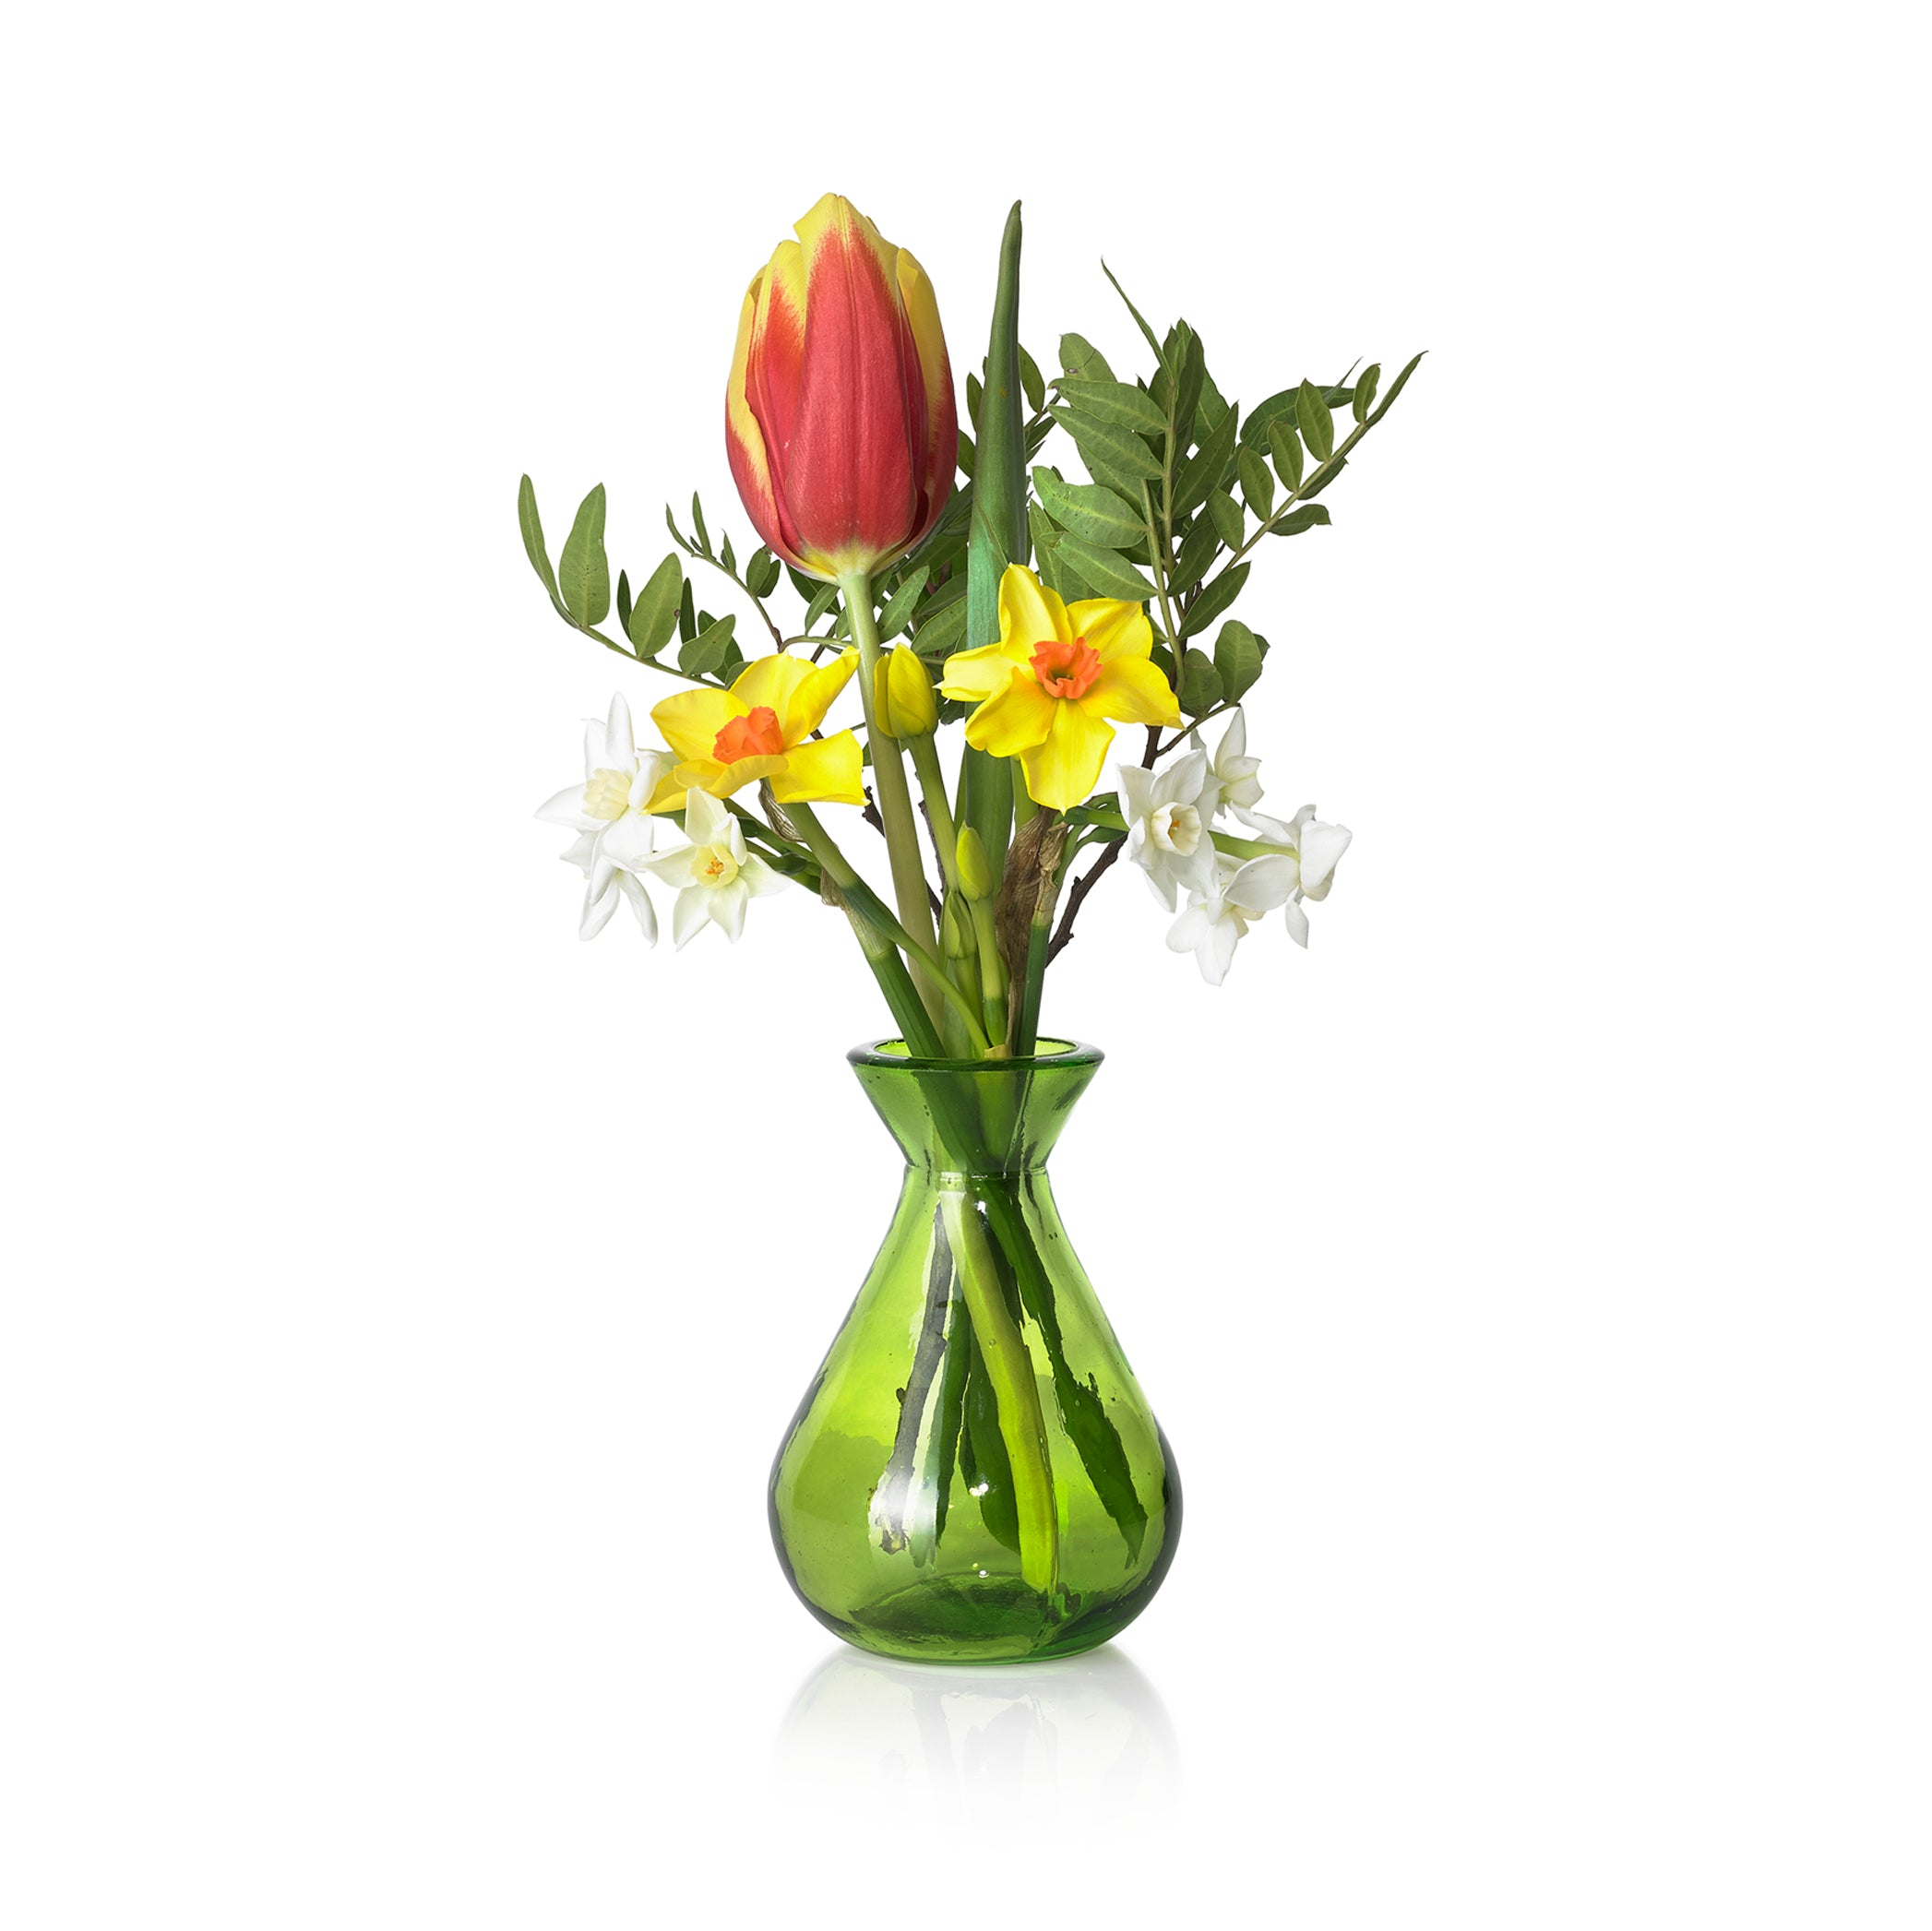 Recycled Glass Bud Vase in Lime Green